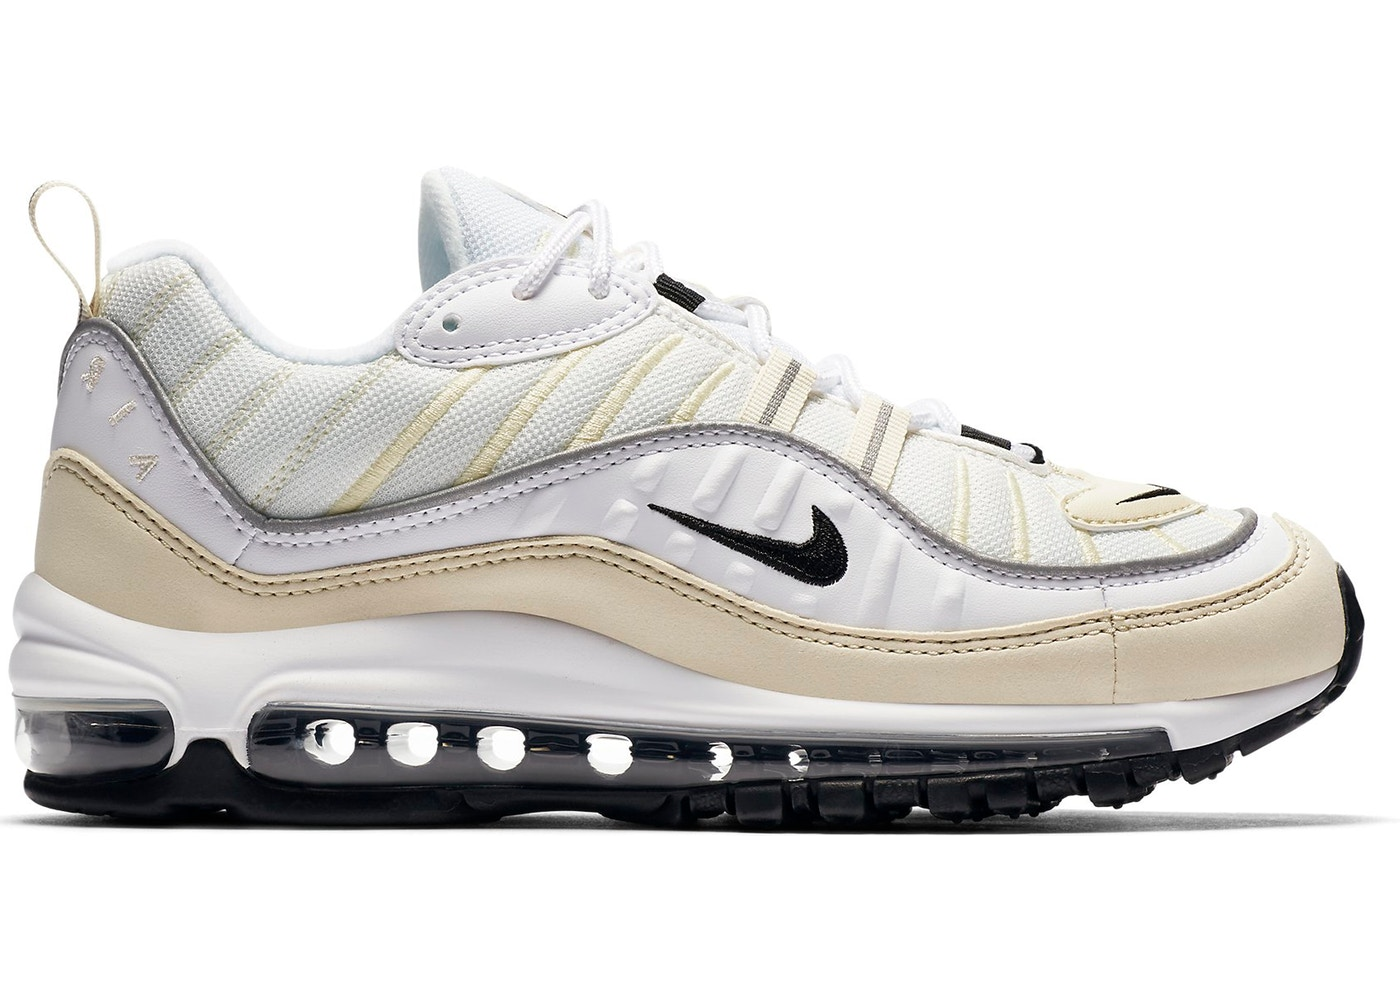 60613636e6 Sell. or Ask. Size: 7W. View All Bids. Air Max 98 ...